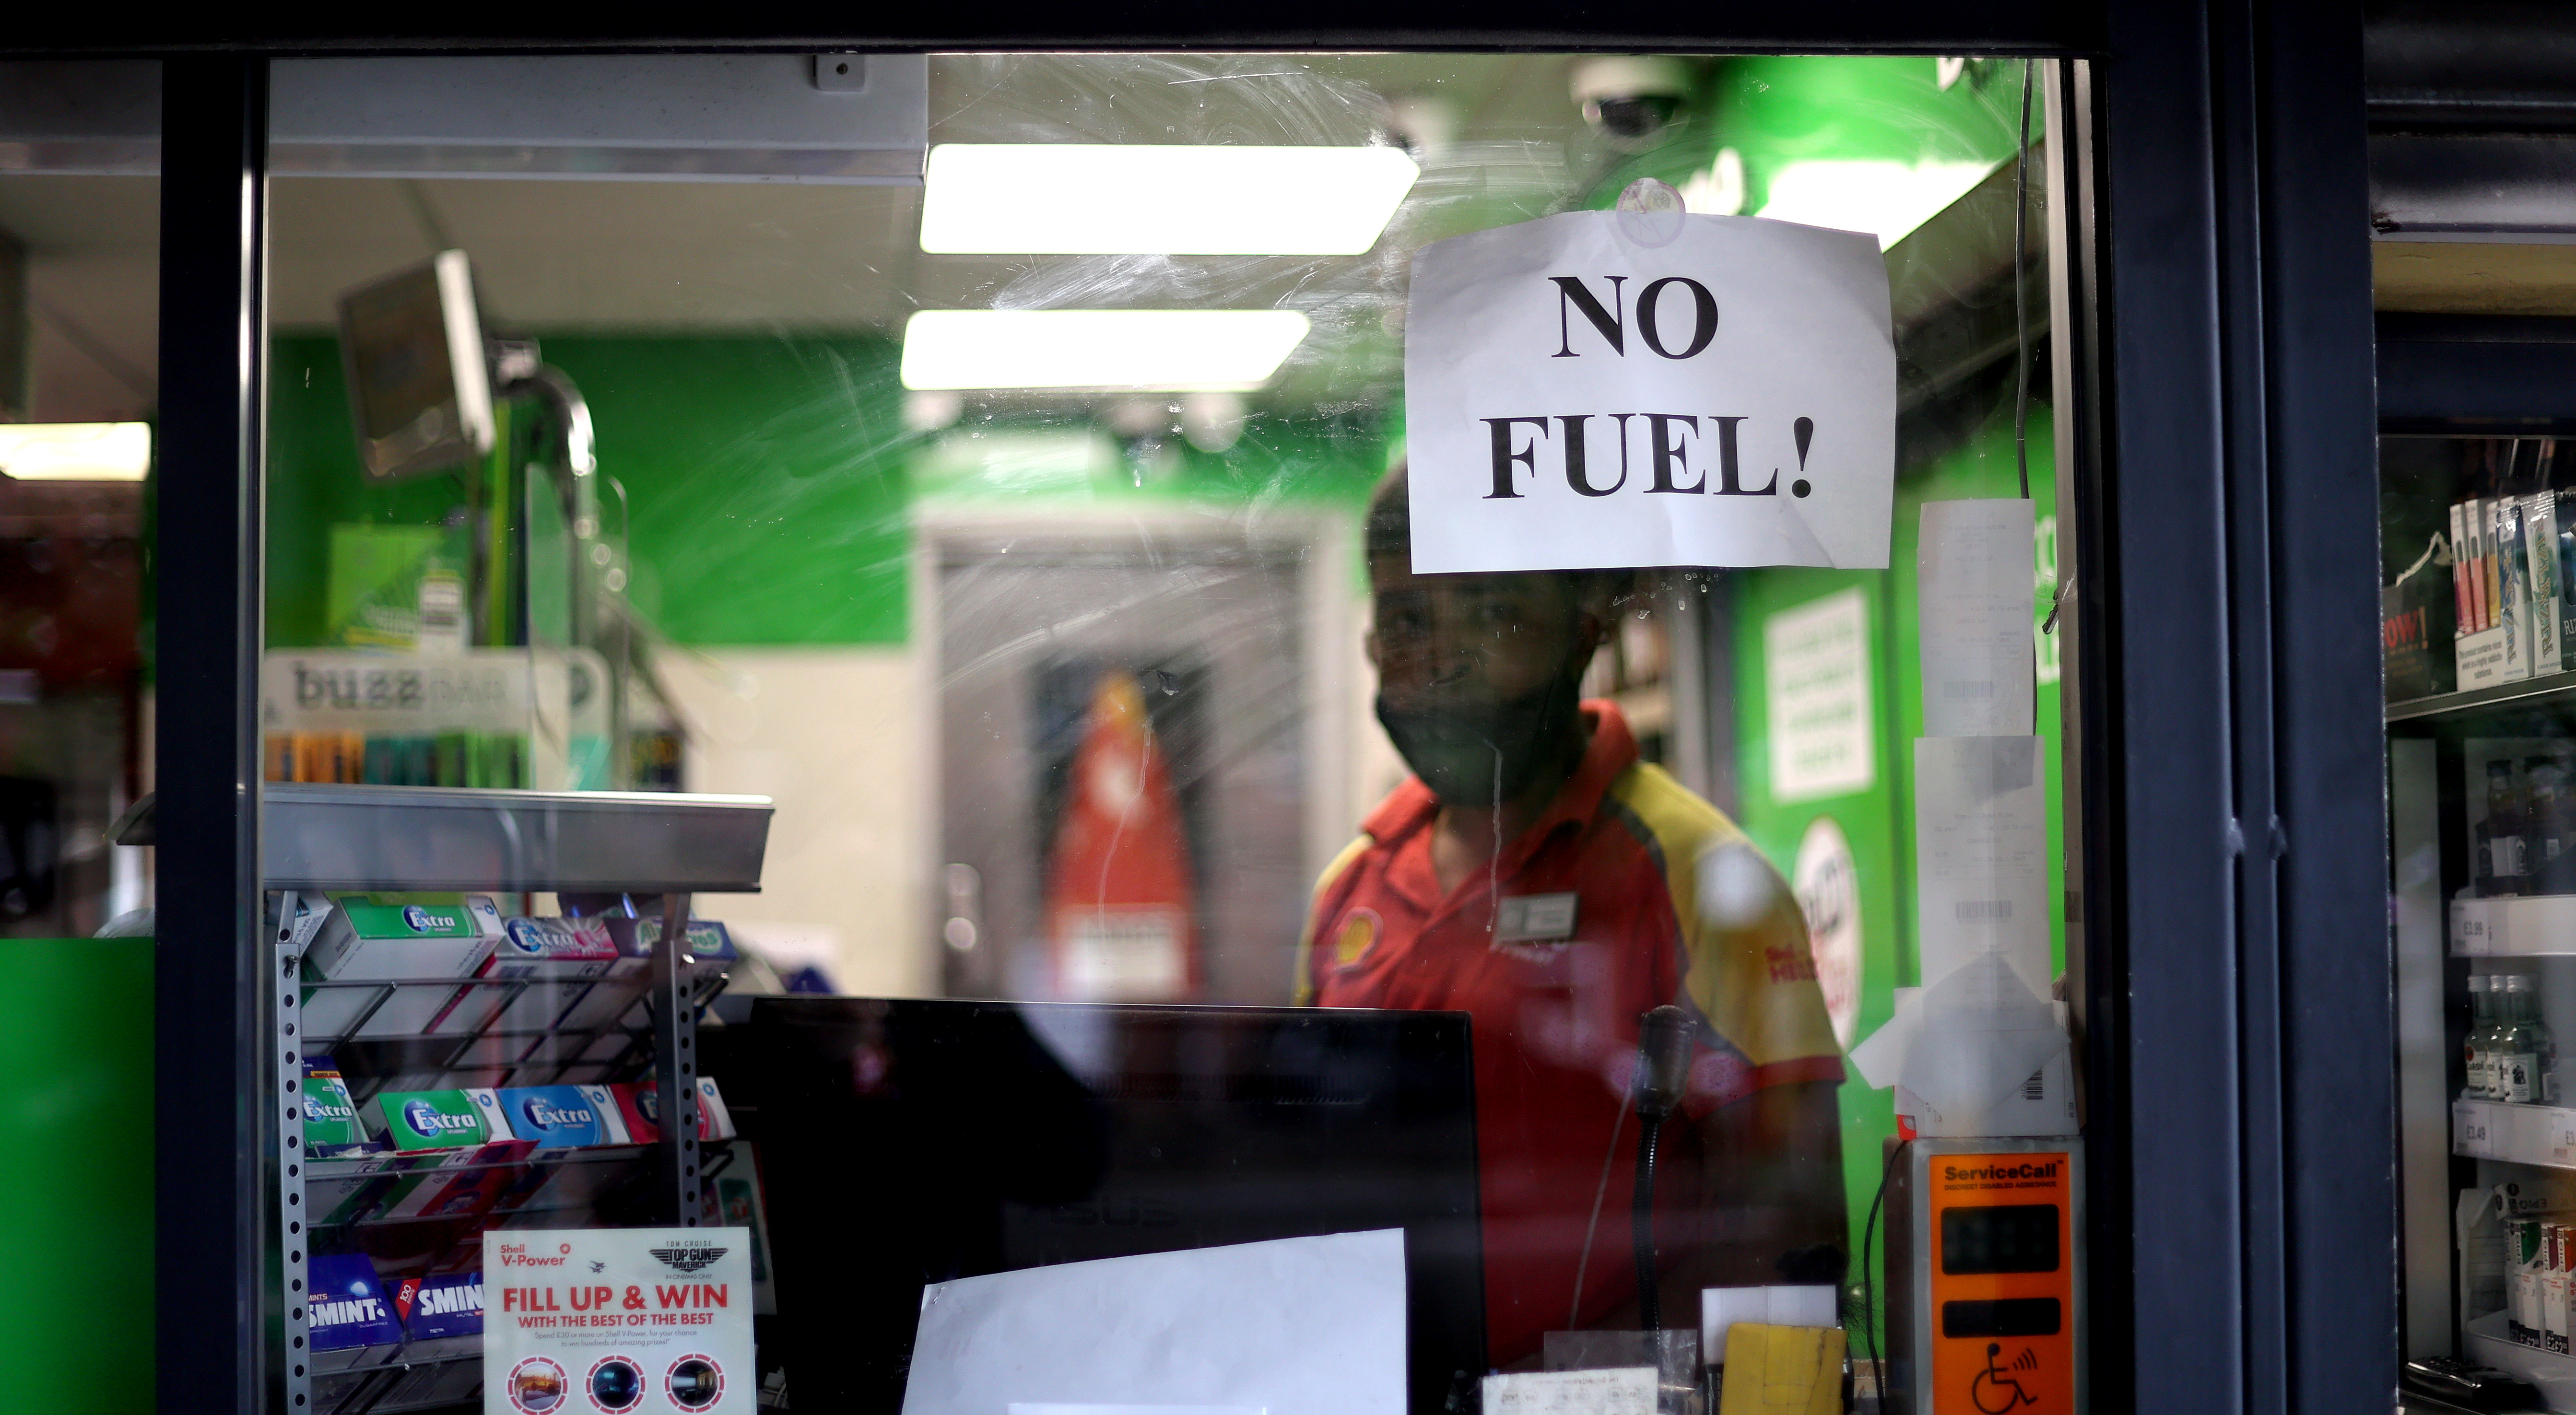 A sign showing customers that fuel has run out is pictured at a petrol station in Stoke-on-Trent, Staffordshire, Britain, September 28, 2021.  REUTERS/Carl Recine